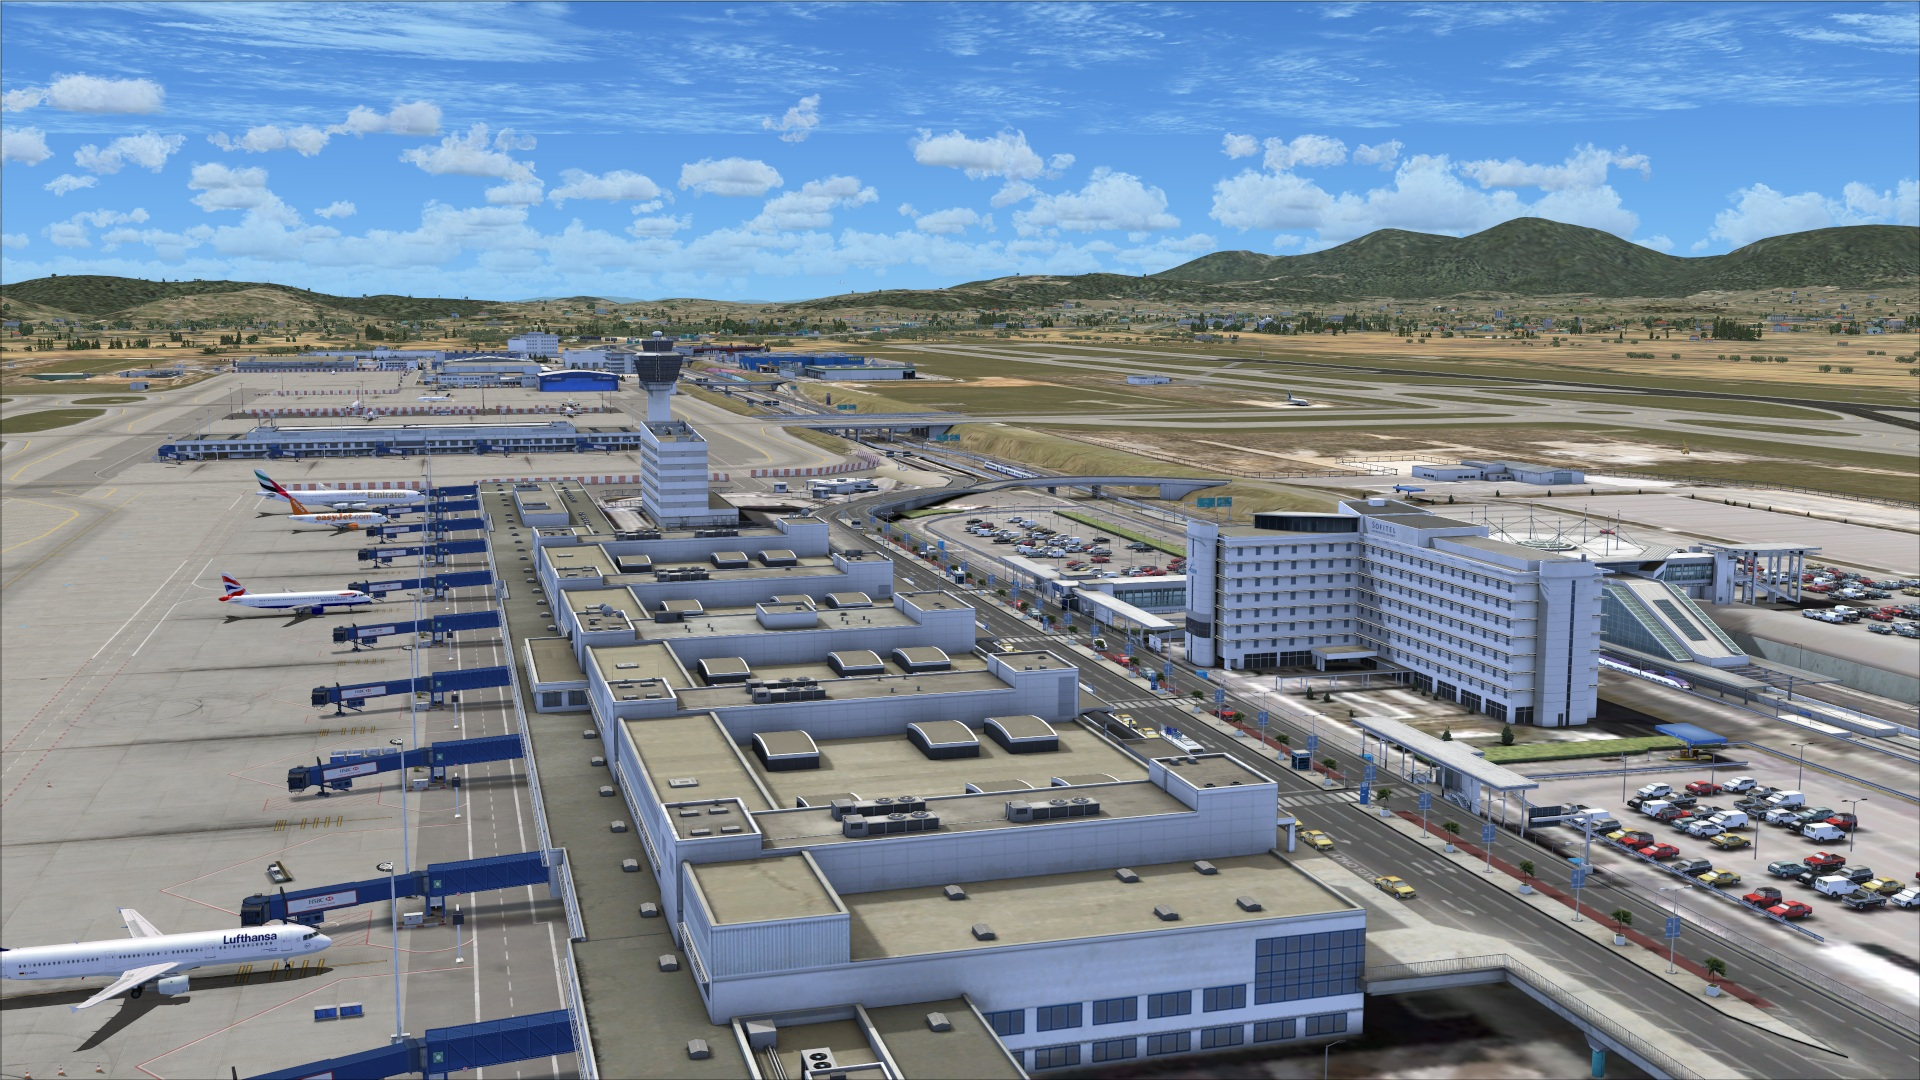 Review of FlyTampa – Athens for FSX